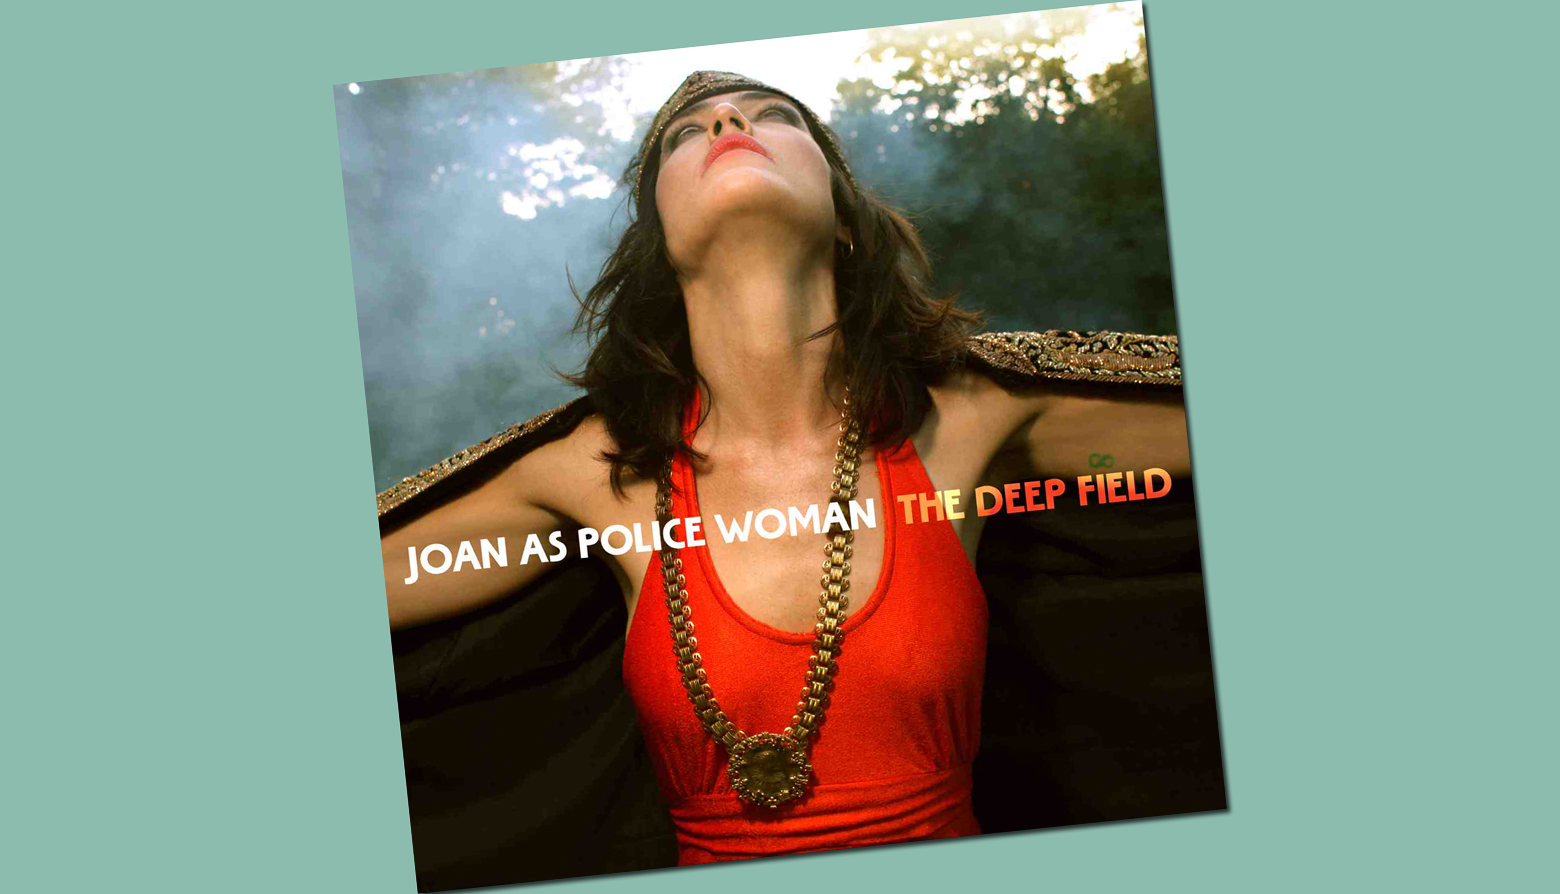 Joan-As-Police-Woman-The-Deep-Field-Packshot-copy